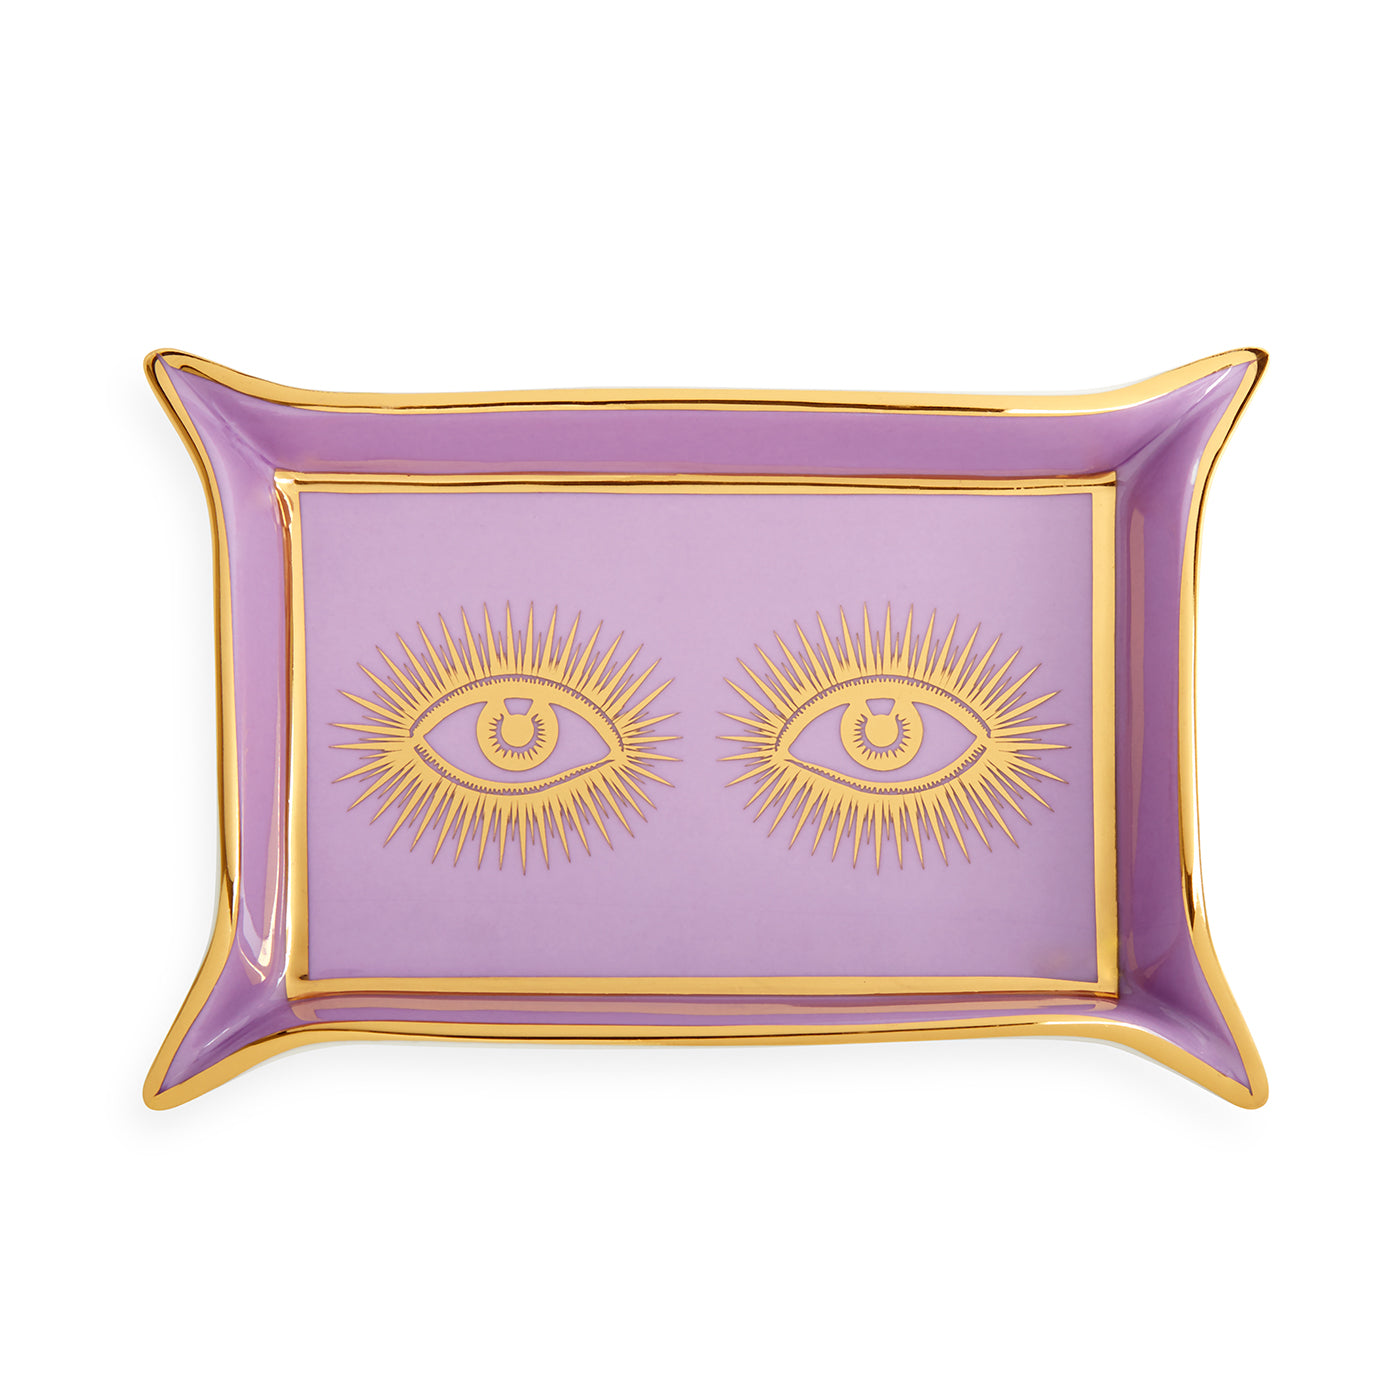 Eyes Valet Tray Design By Jonathan Adler Burke Decor